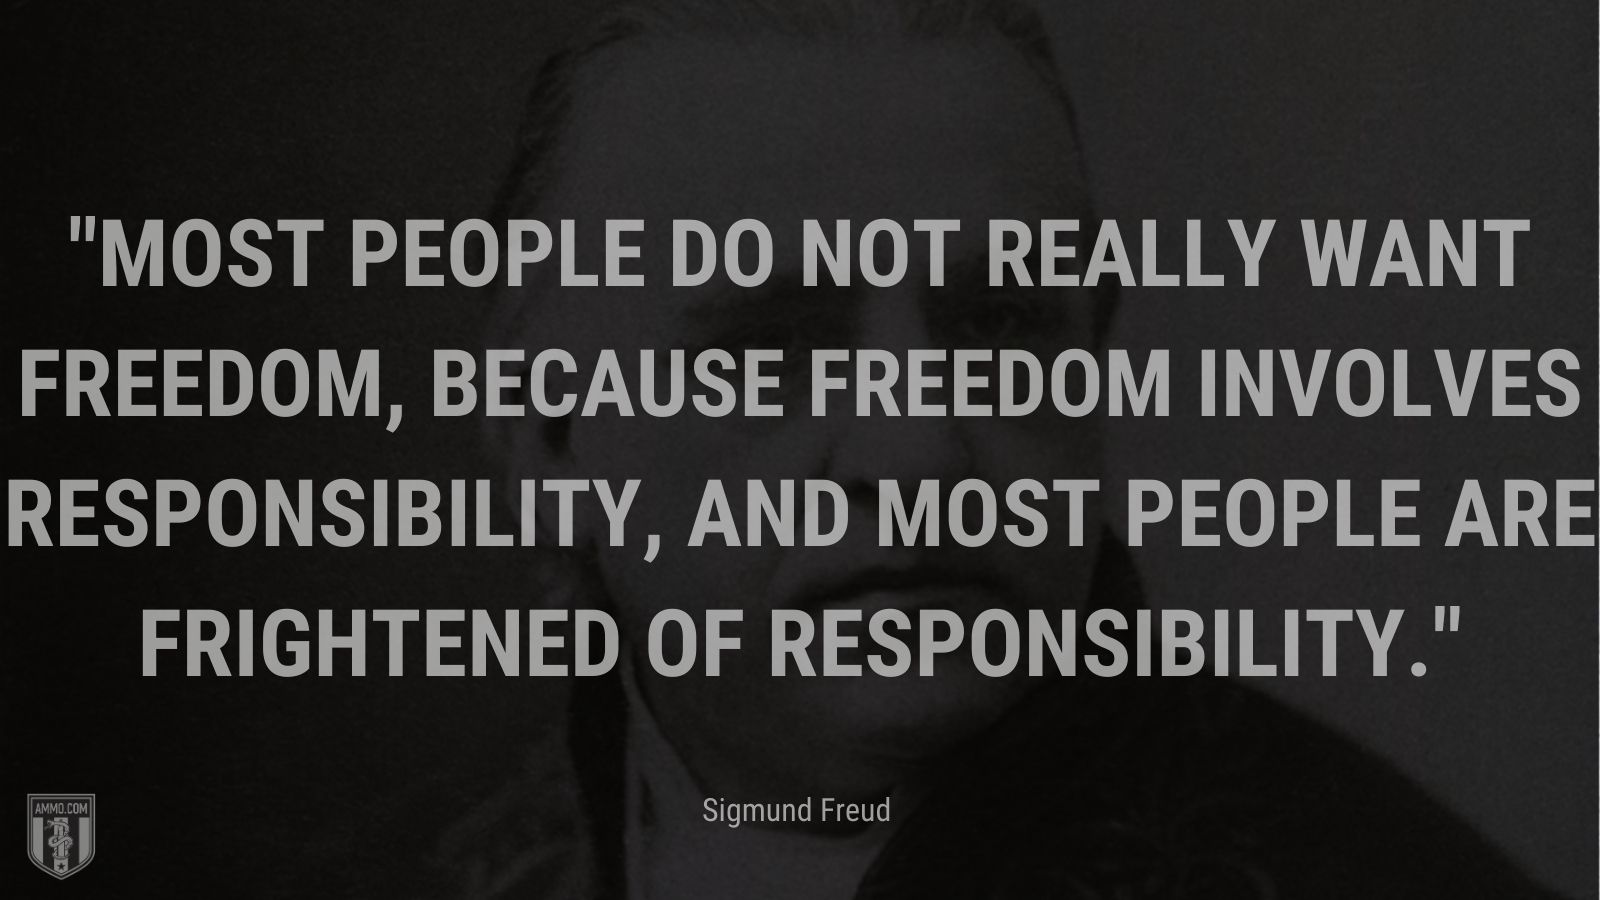 """""""Most people do not really want freedom, because freedom involves responsibility, and most people are frightened of responsibility. - Sigmund Freud"""